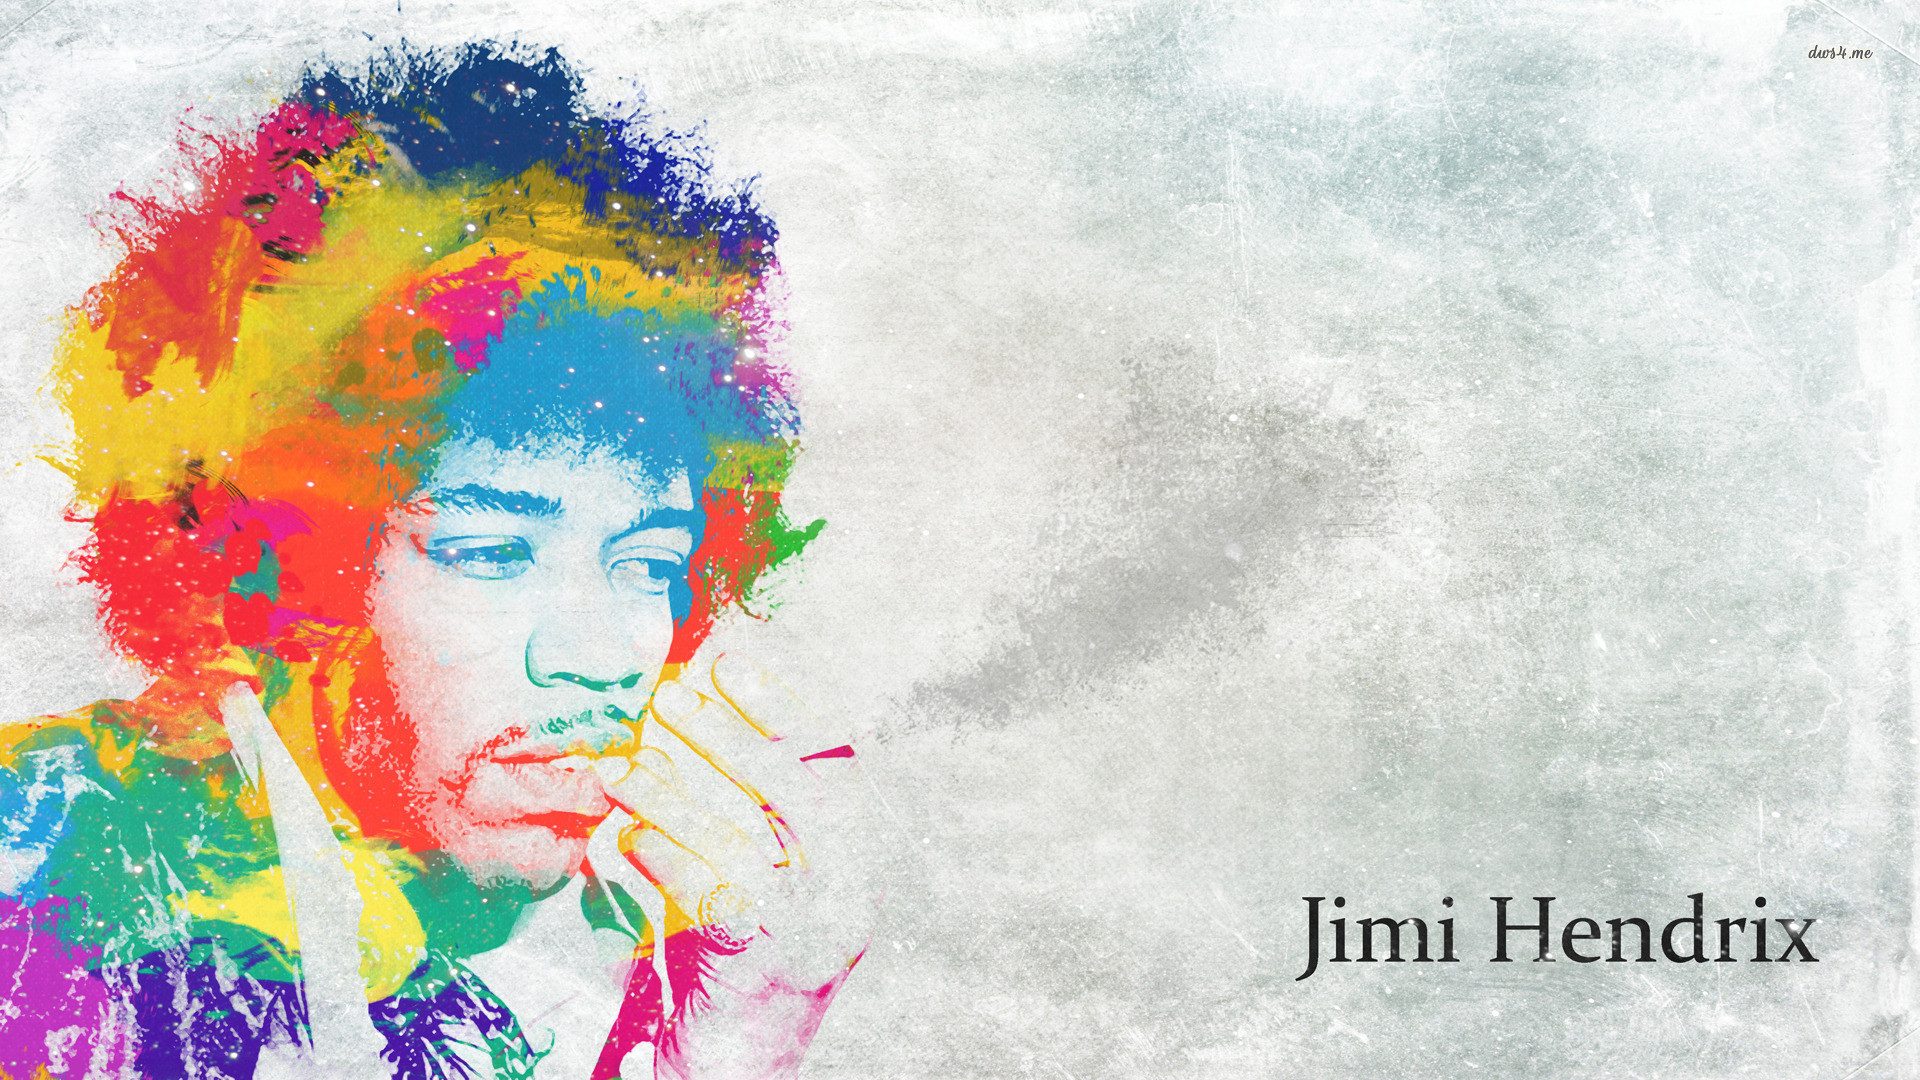 1920x1080 Jimi Hendrix Wallpapers Images Photos Pictures Backgrounds 1920×1080 Jimi  Hendrix Wallpapers (36 Wallpapers